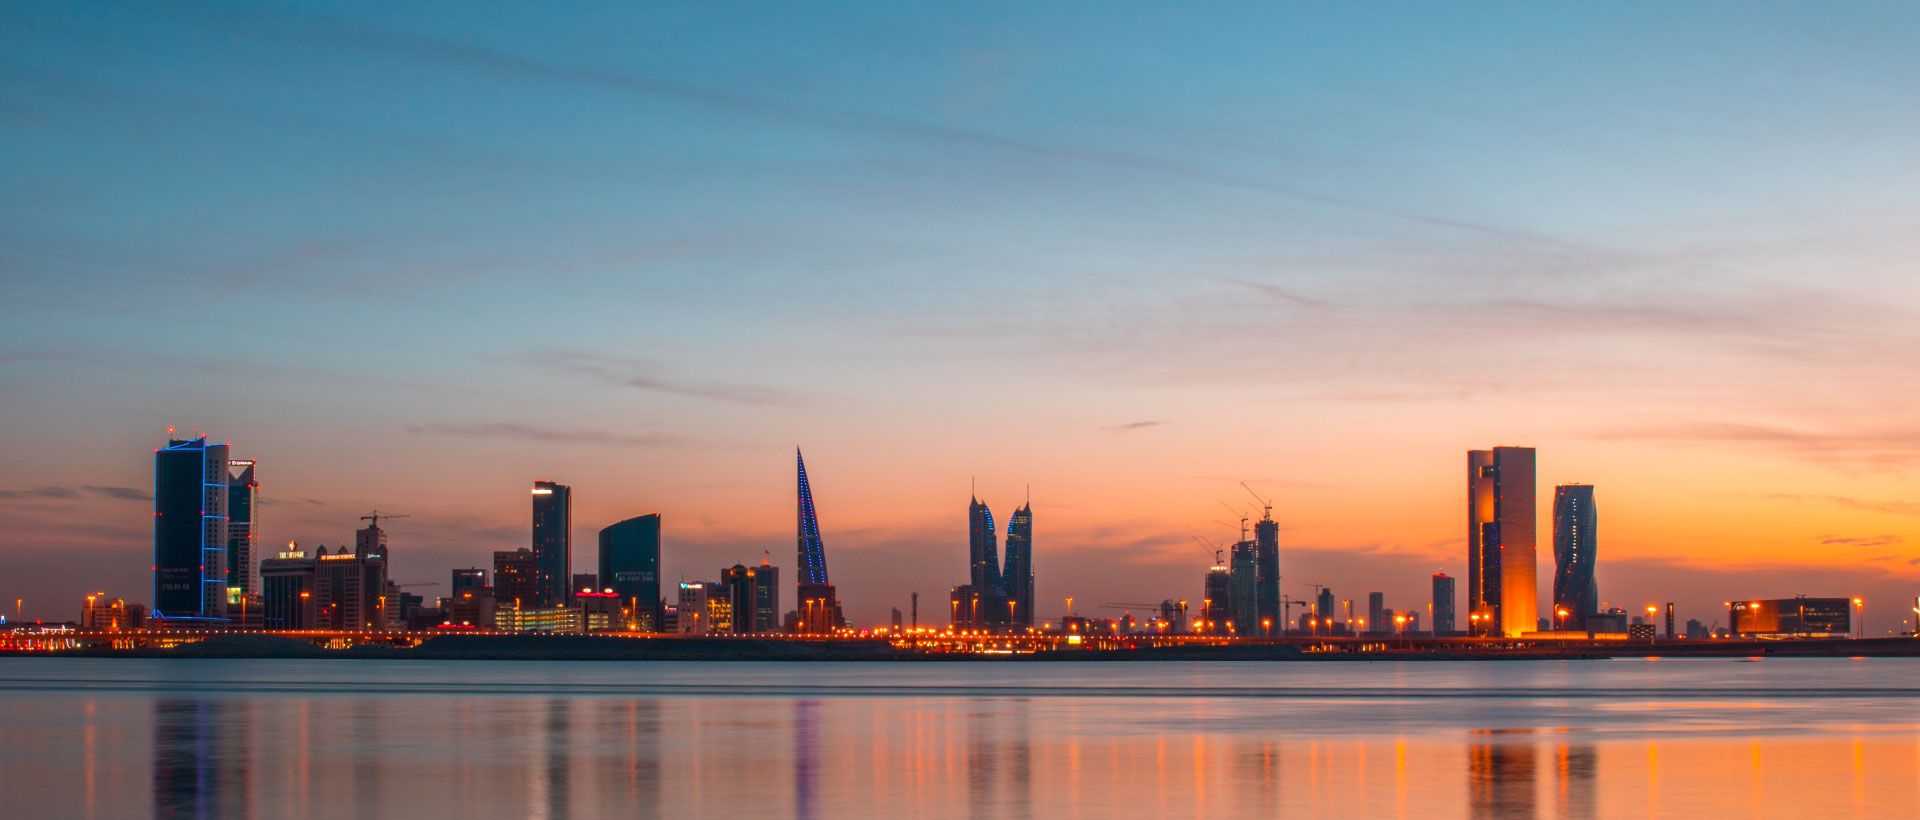 The Legacy of the Lamb in Bahrain